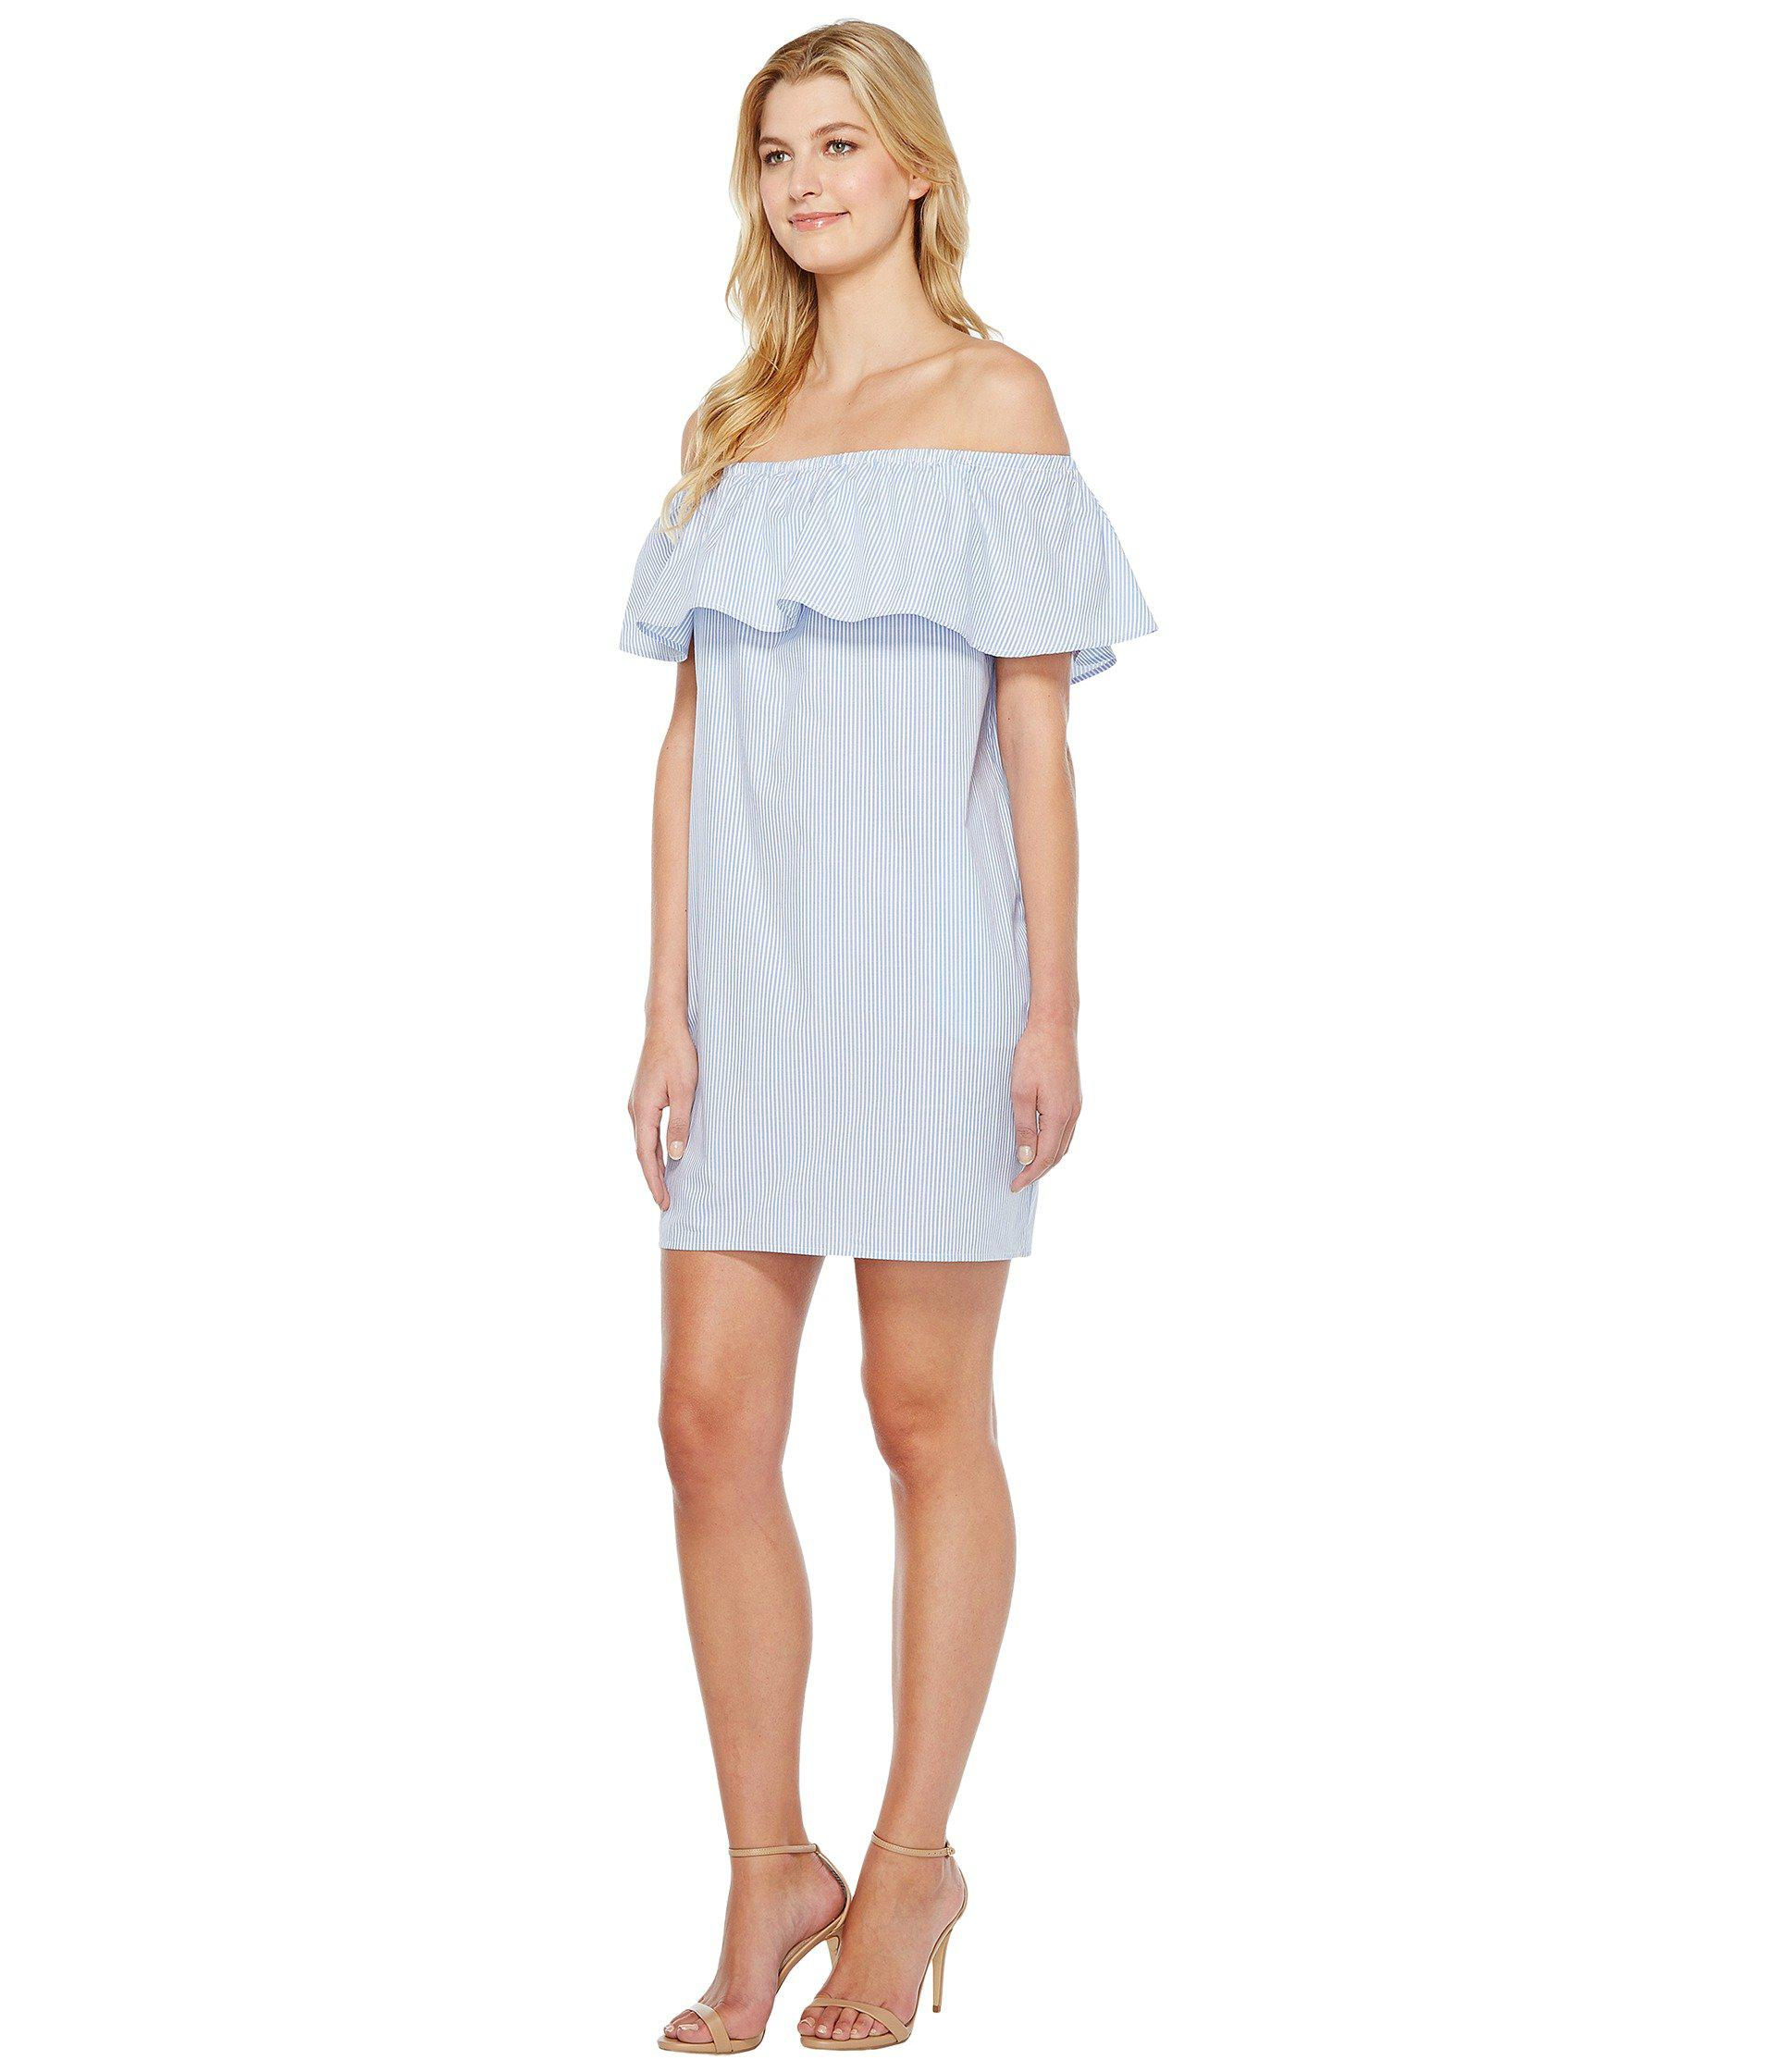 5436faa6fc5 Lyst - Vince Camuto Ruffle Off Shoulder Yarn-dye Stripe Dress in Blue - Save  33%